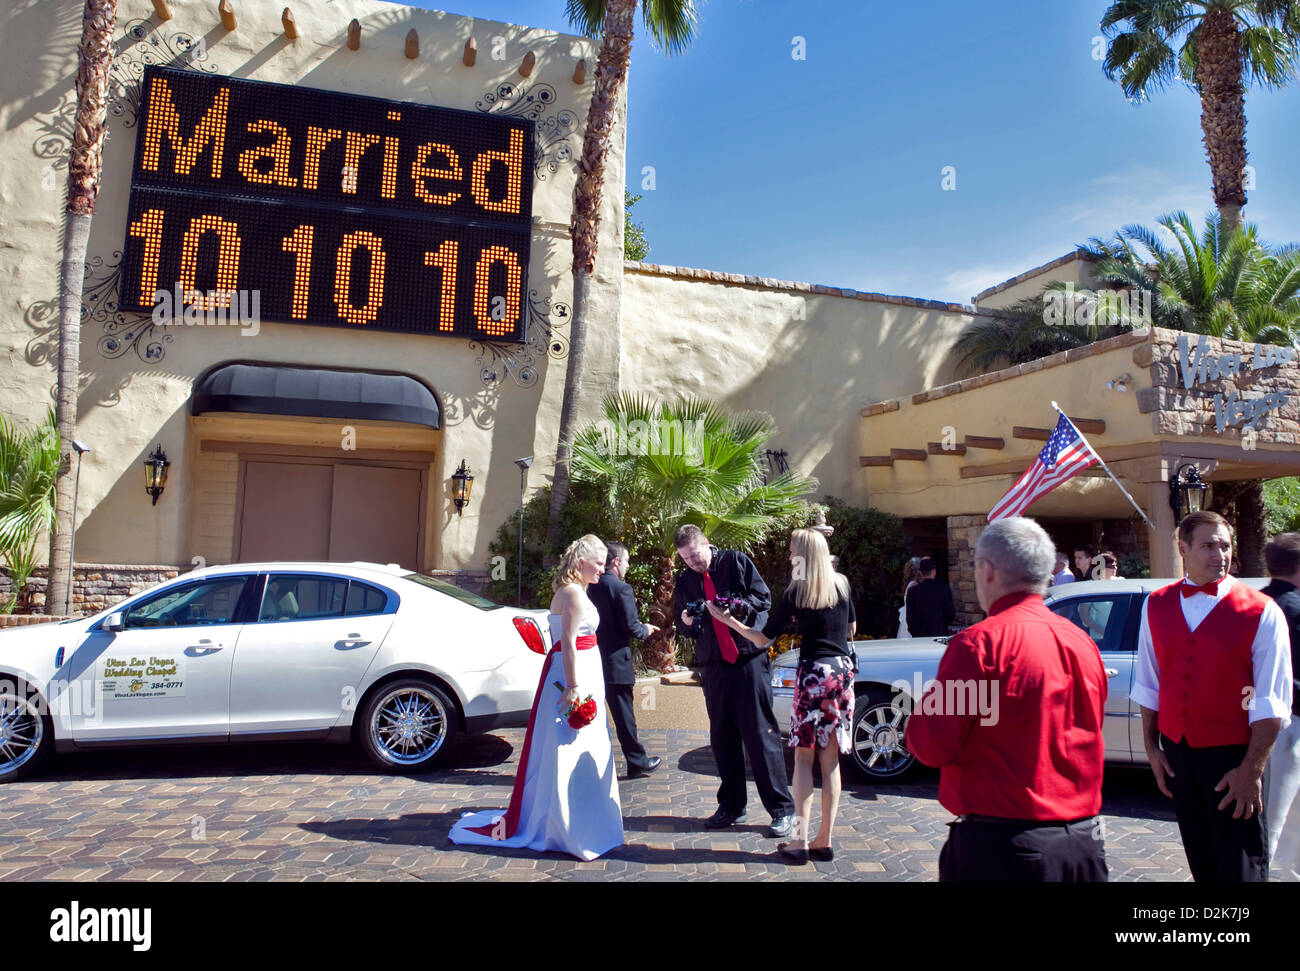 A RECENTLY MARRIED COUPLE OUTSIDE VIVA LAS VEGAS WEDDING CHAPEL IN DOWNTOWN OCTOBER 2010